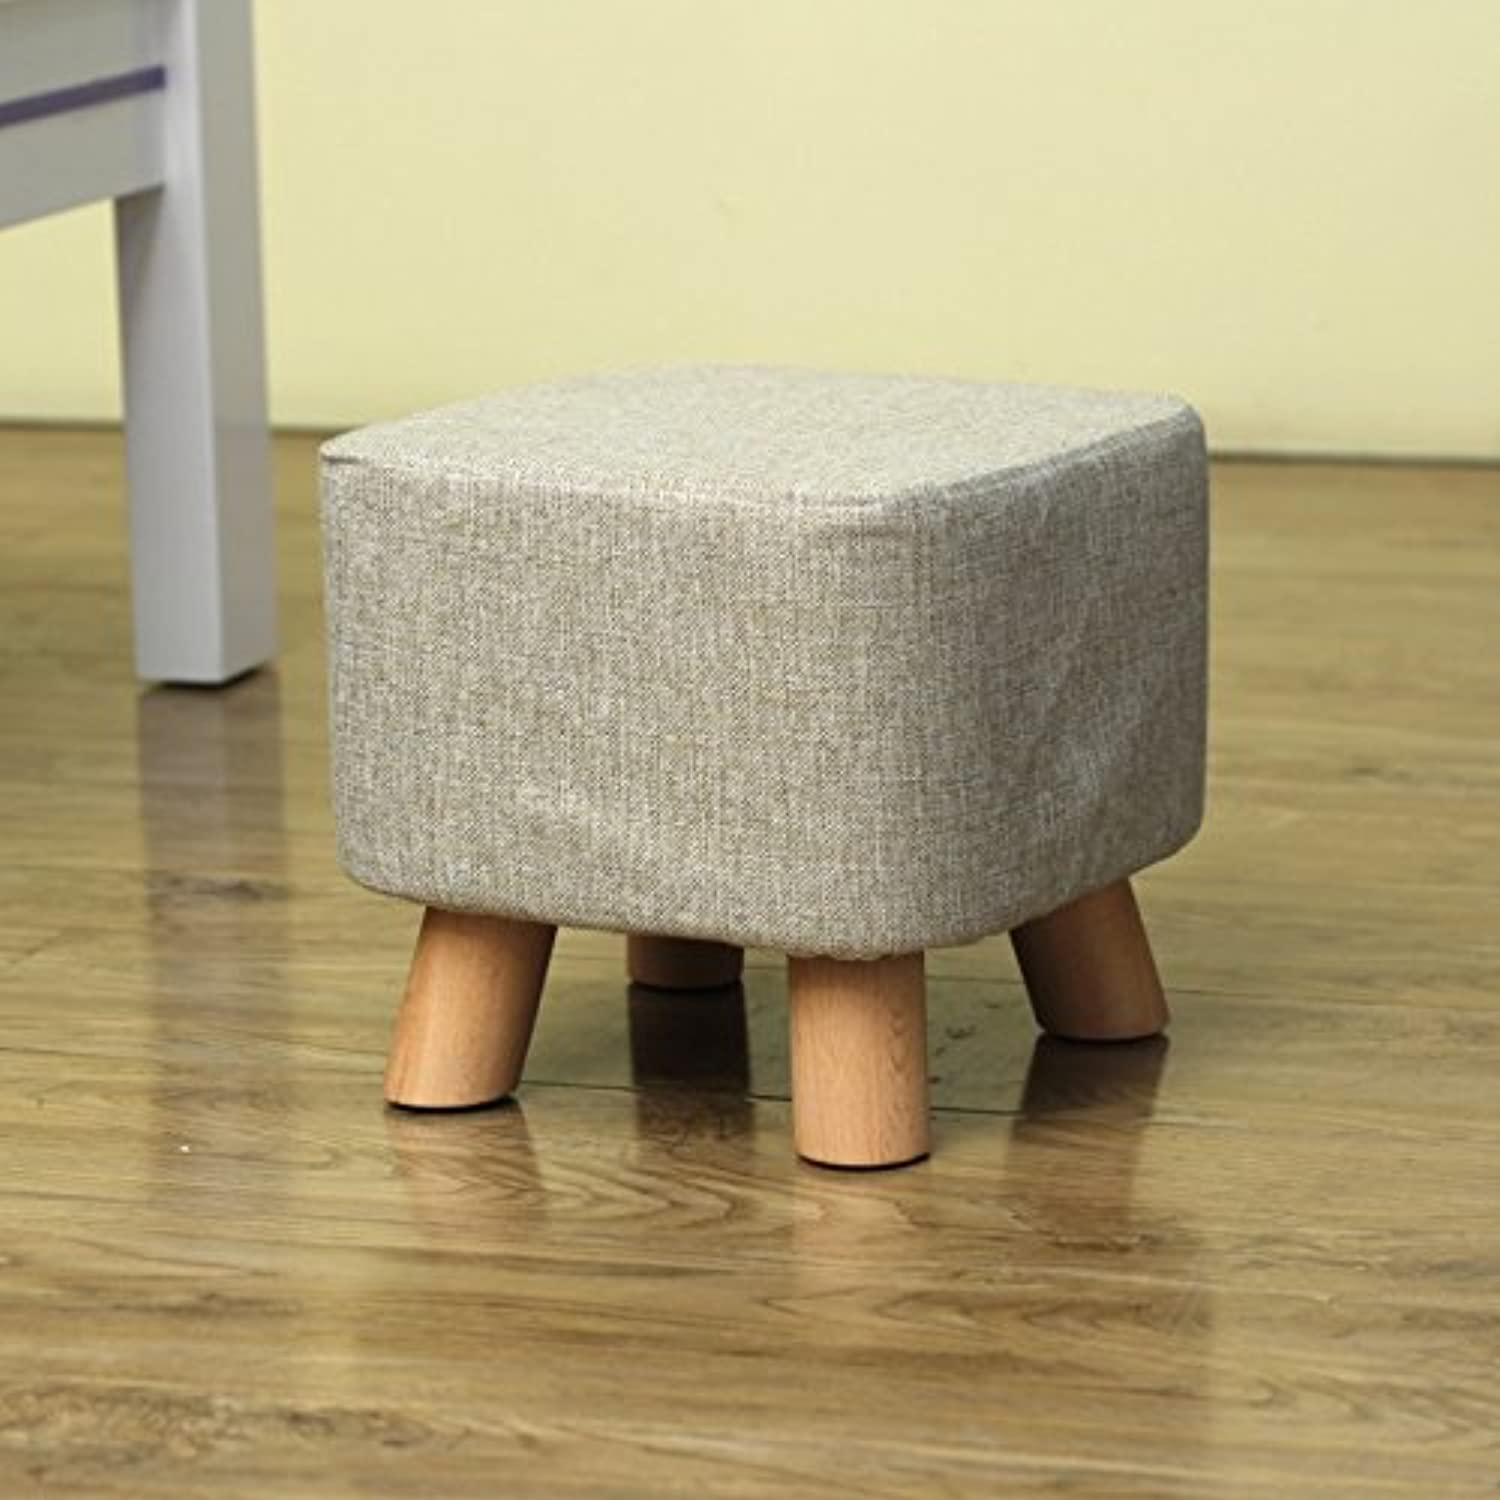 Dana Carrie Sofa Chairs Stylish and Creative Party stool Solid Wood Changing shoes stool Dressing Bench wear shoes Bench Seating, Coffee is Served stool Footstool, Pixel color